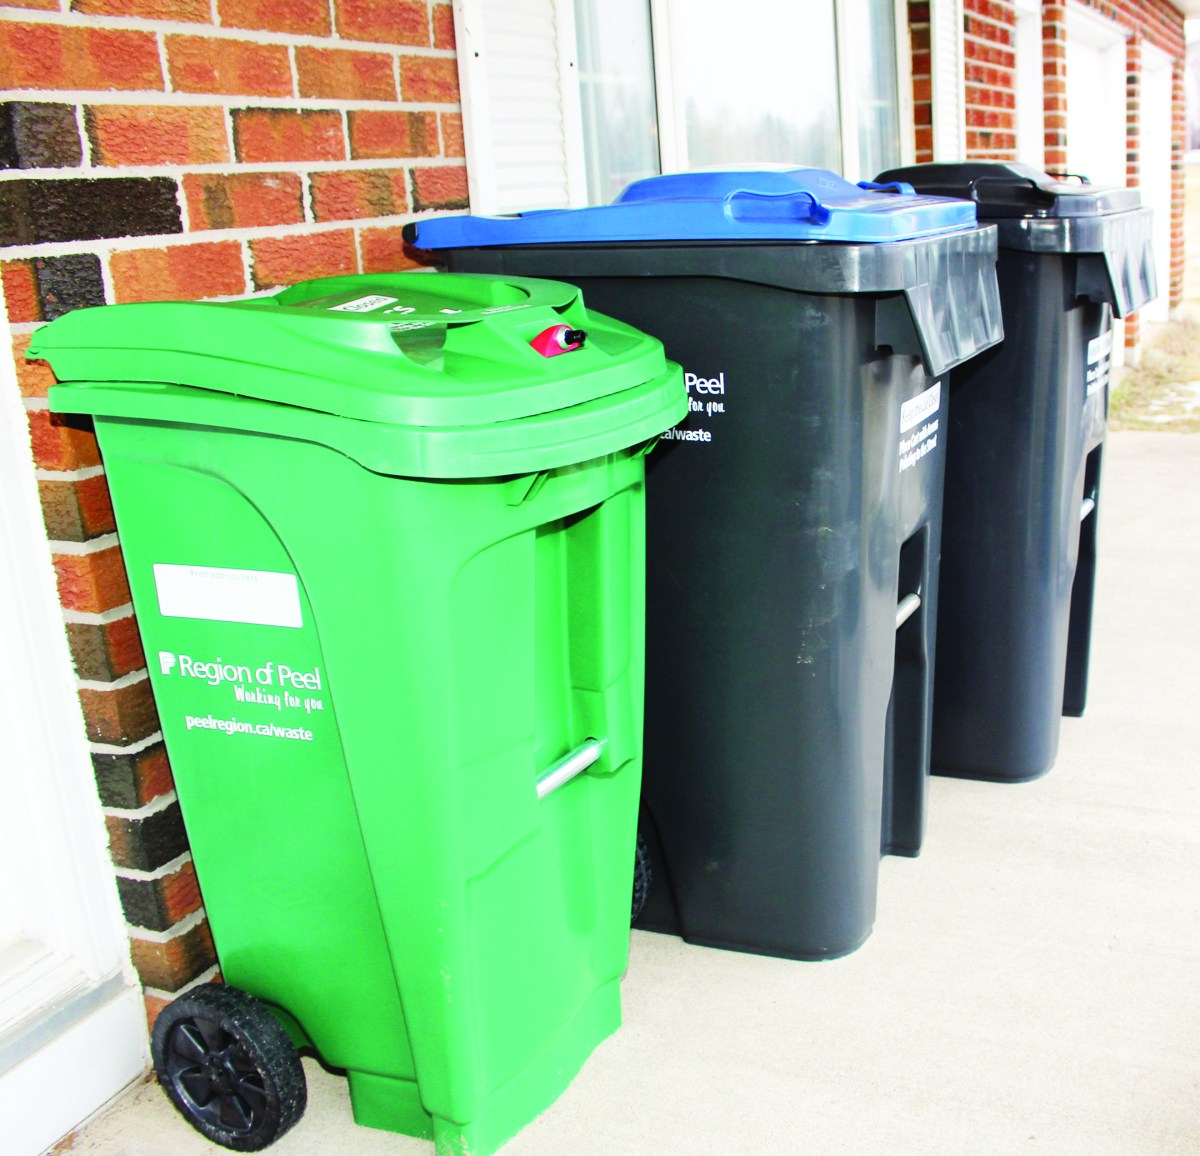 Region Says New Garbage Collection System Working Caledon Citizen